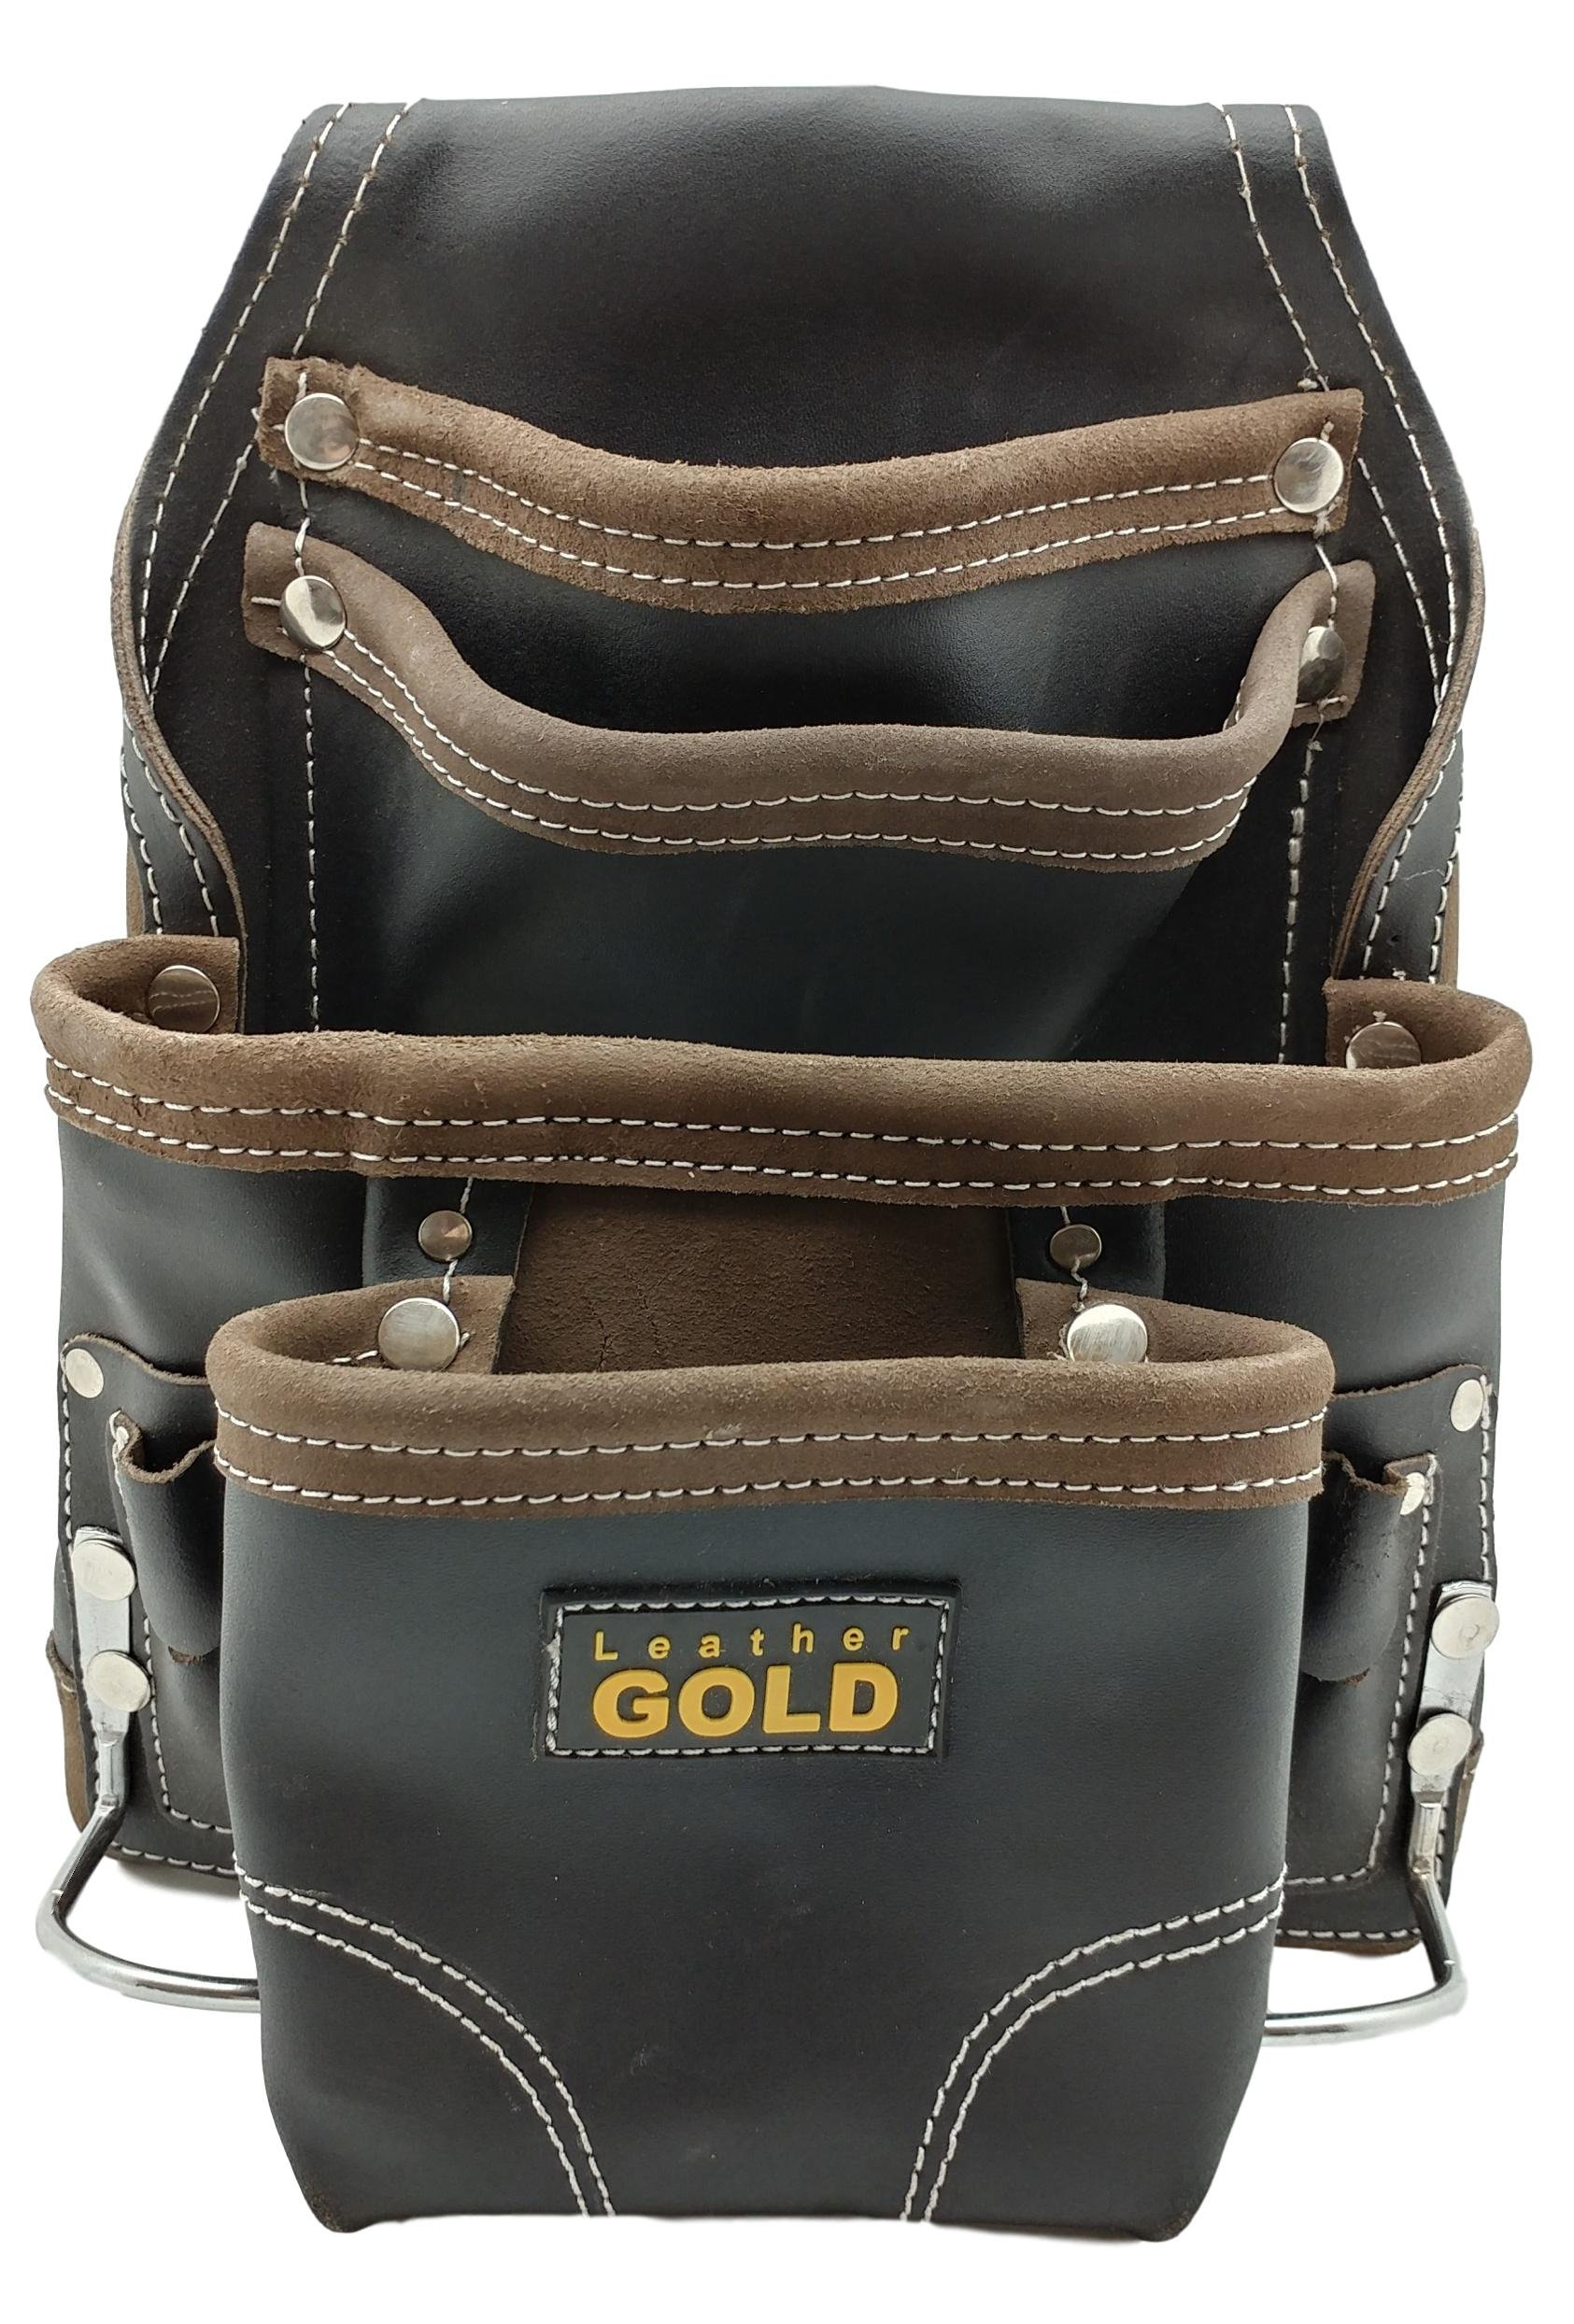 Leather Gold Heavy Duty Tool Pouch | Carpenters Tool Pouch 3150, Black, Oil-Tanned, 10 Pockets, 2 Hammer Holders, Reinforced Seams by Leather Gold